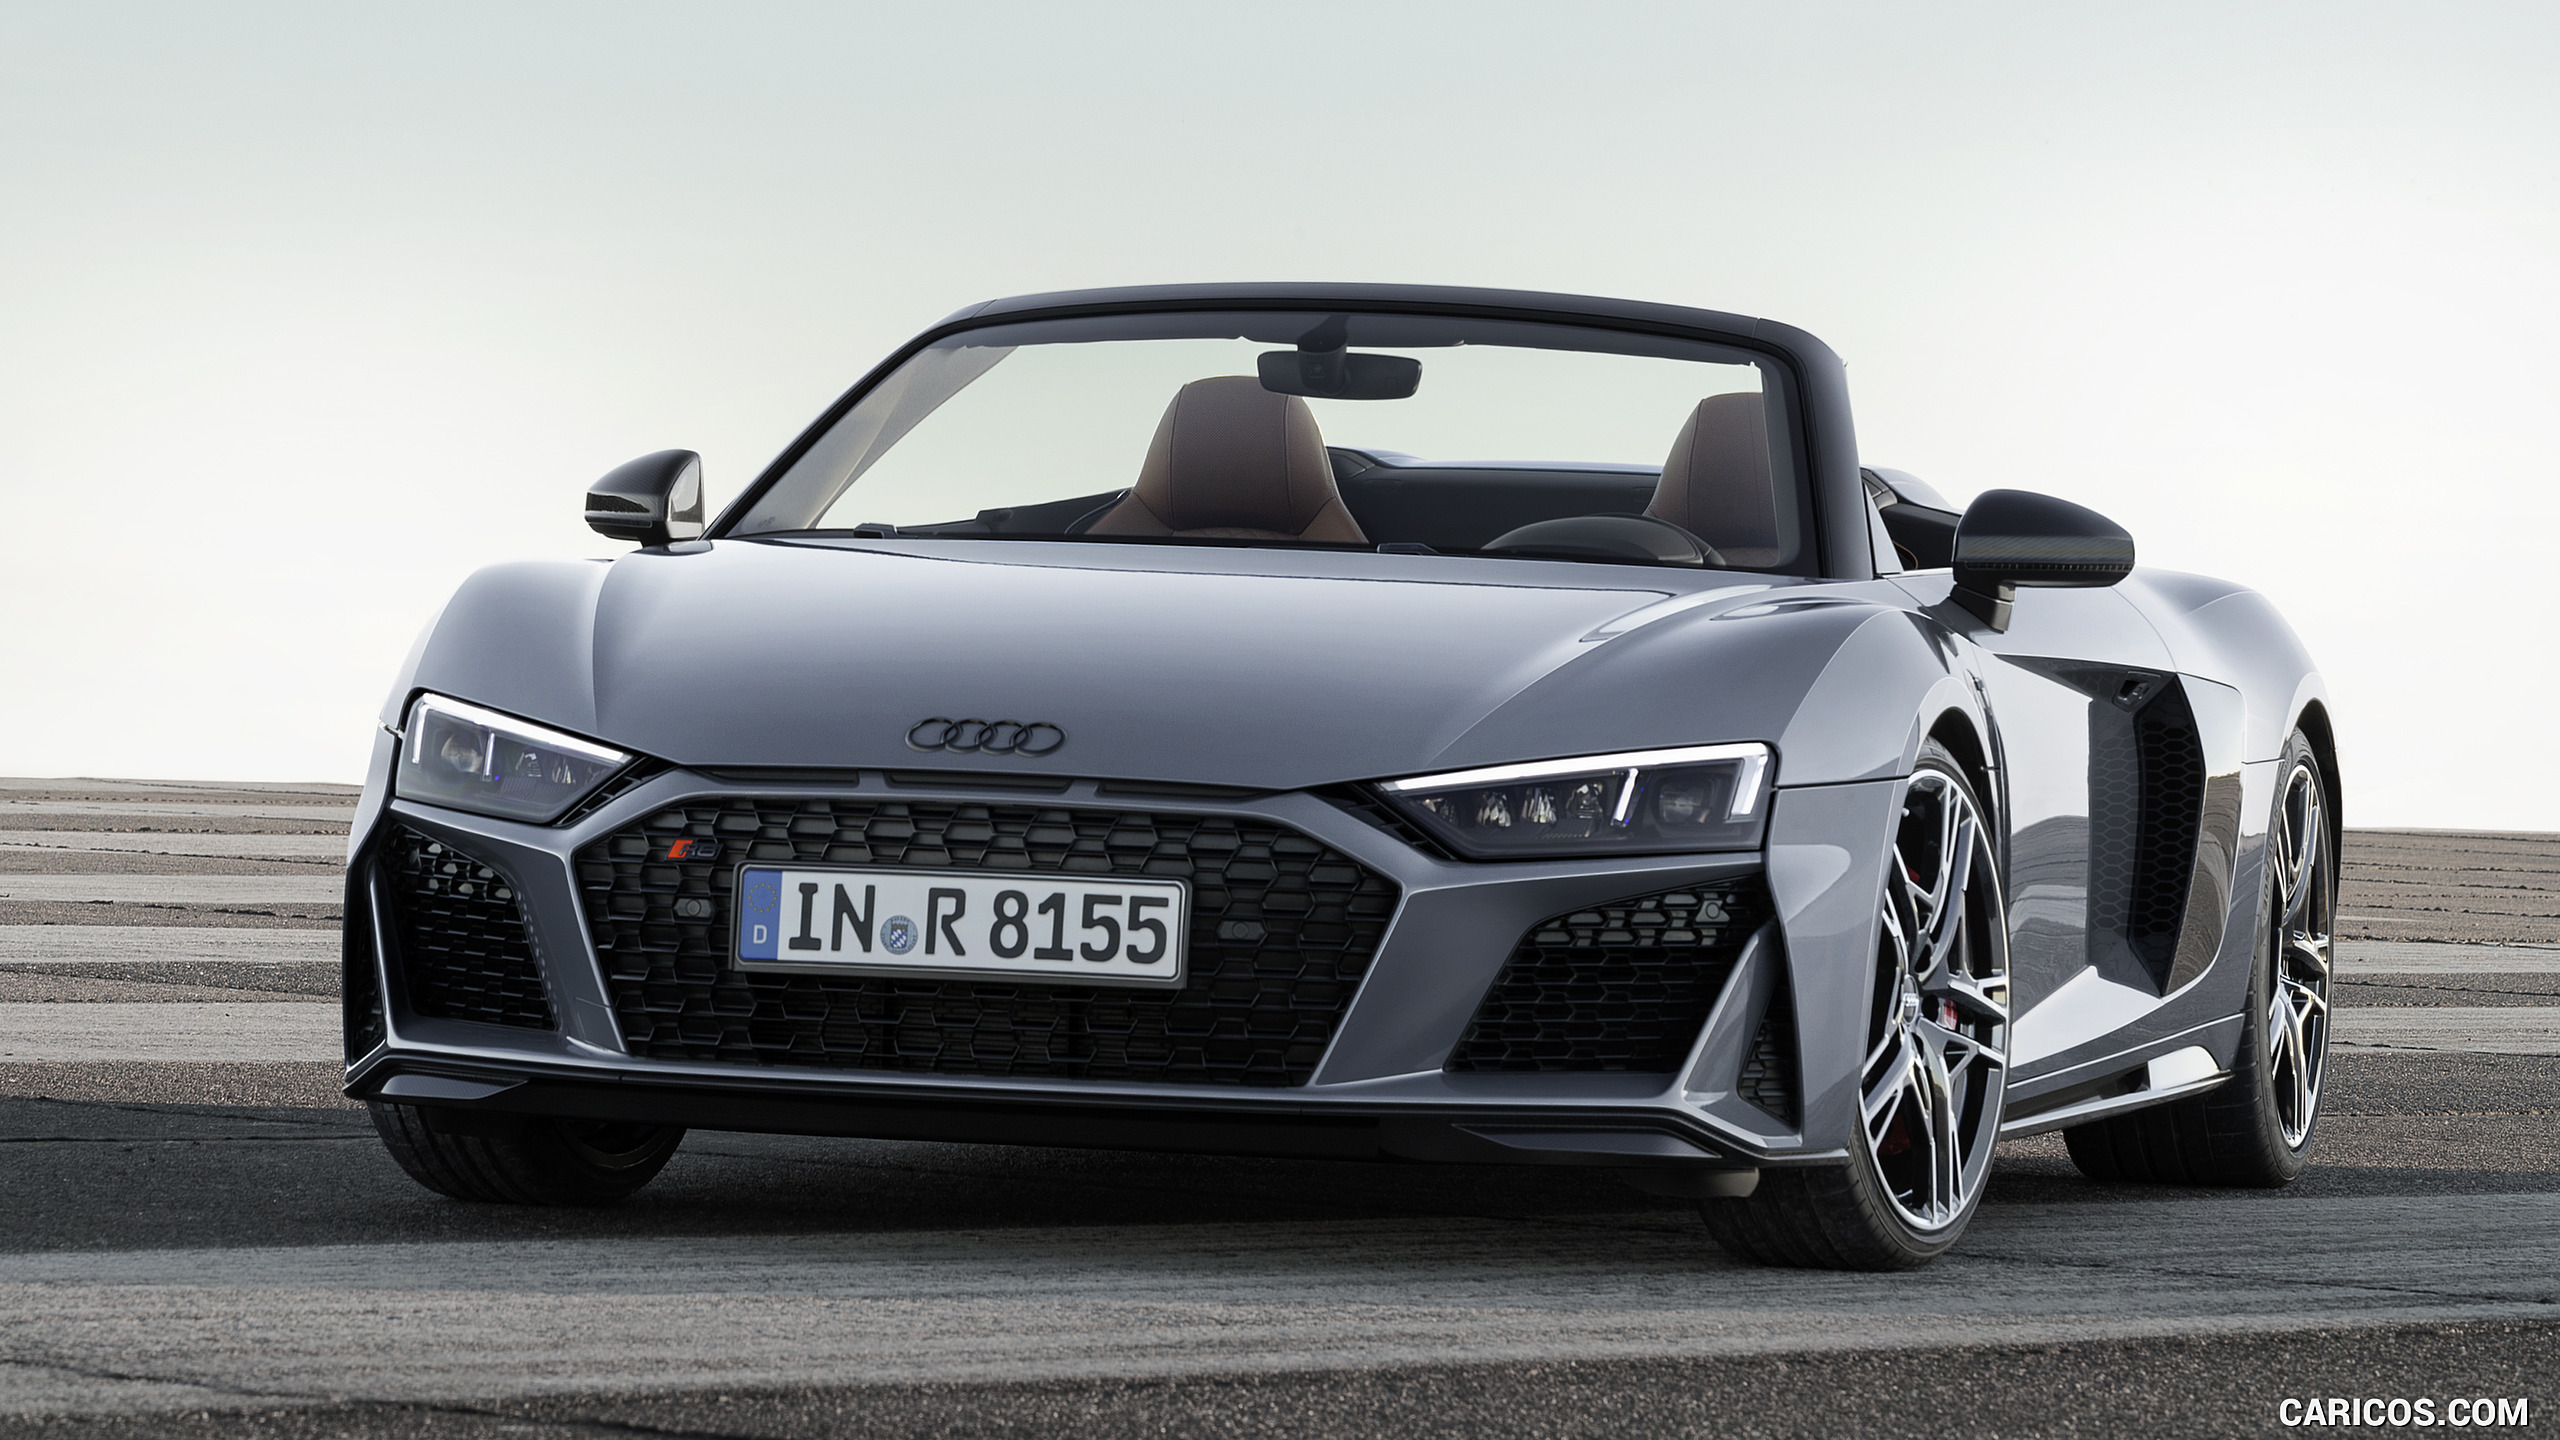 2019 Audi R8 Spyder Color Kemora Gray Metallic   Front HD 2560x1440